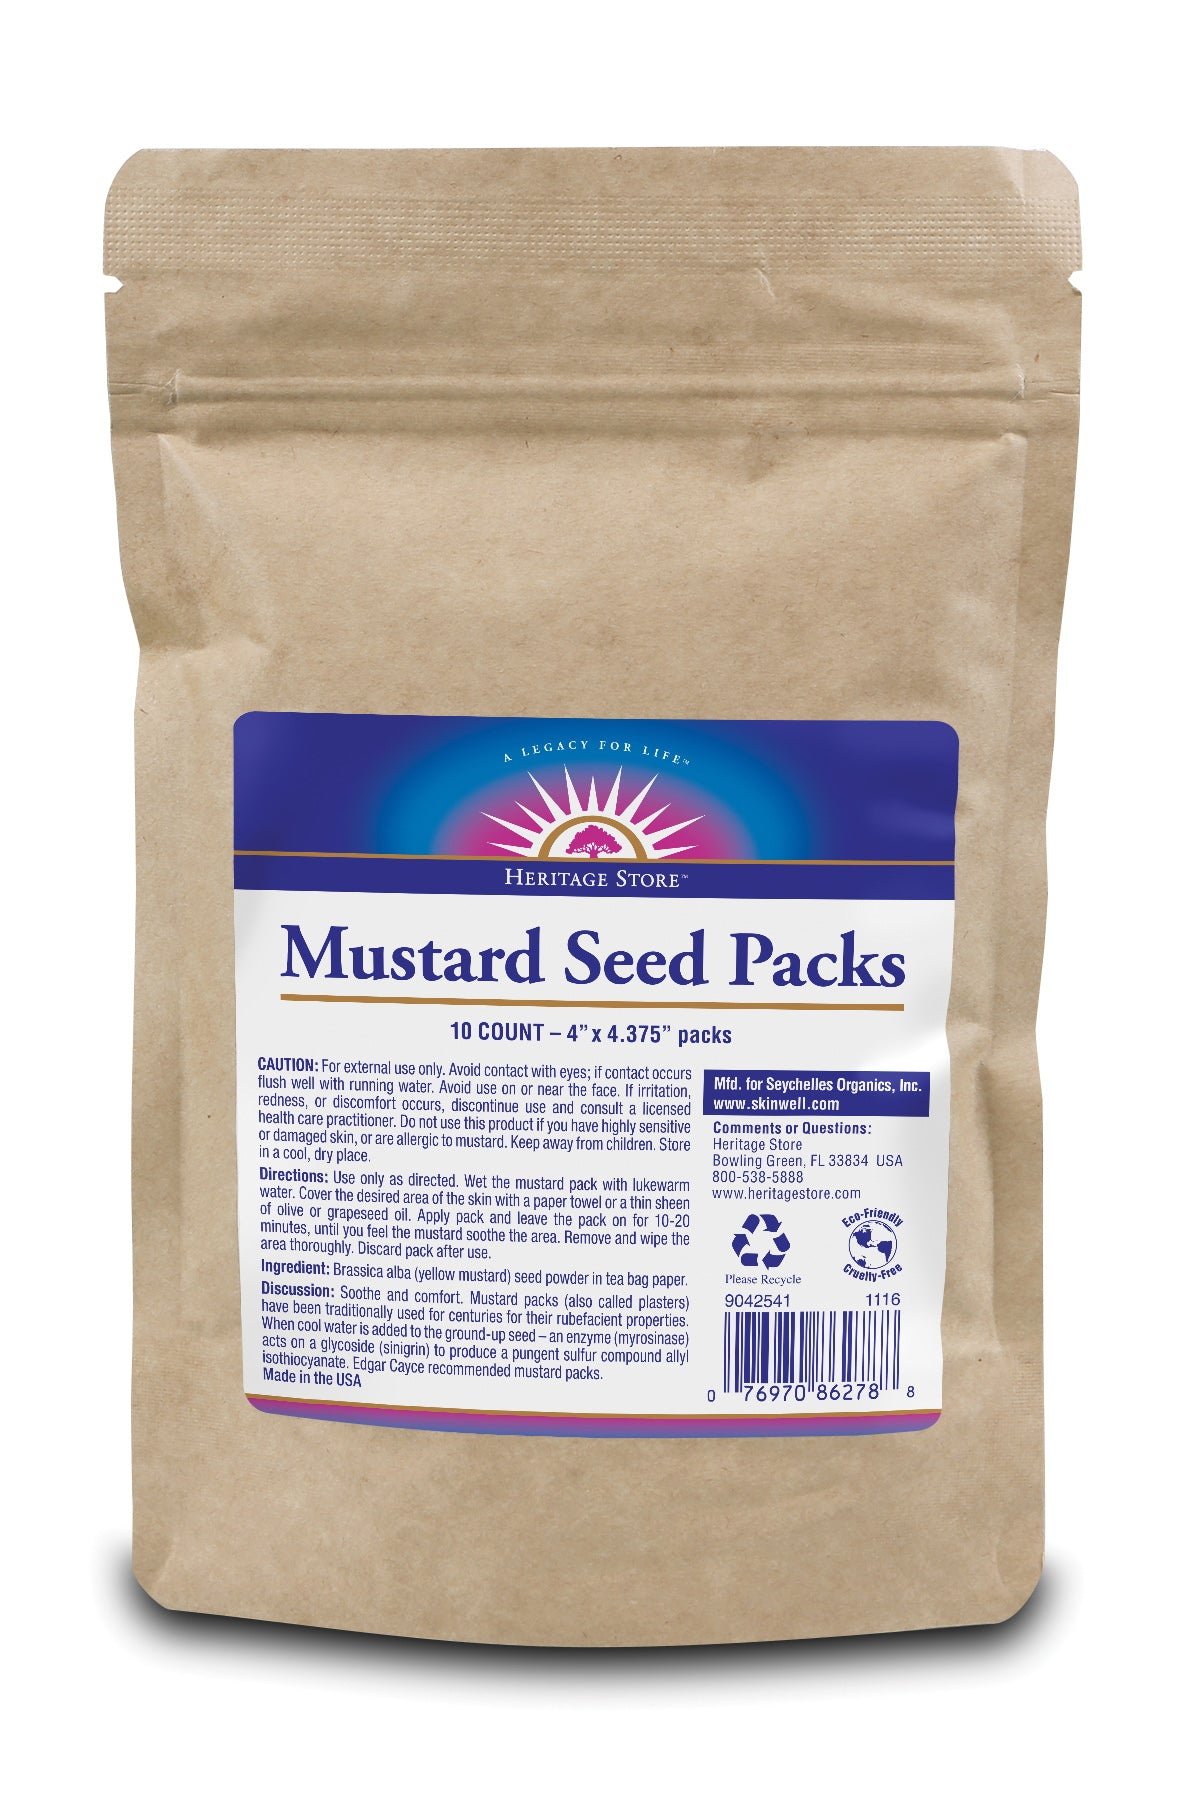 Mustard Seed Packs - Fragrance Free